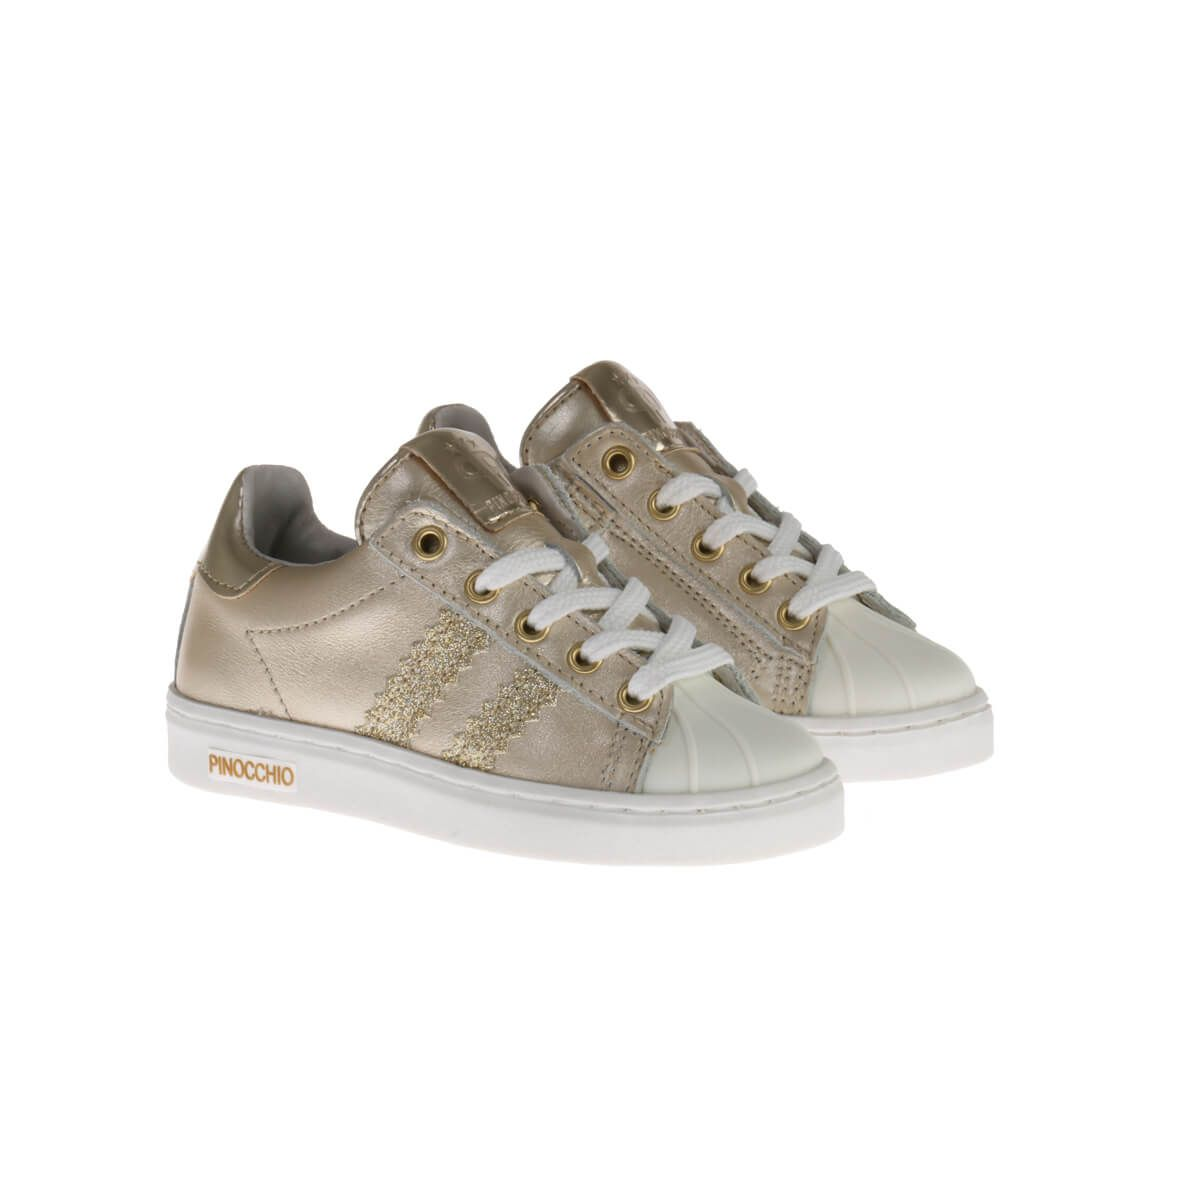 Pinocchio P1834 Sneakers Goud Glitter